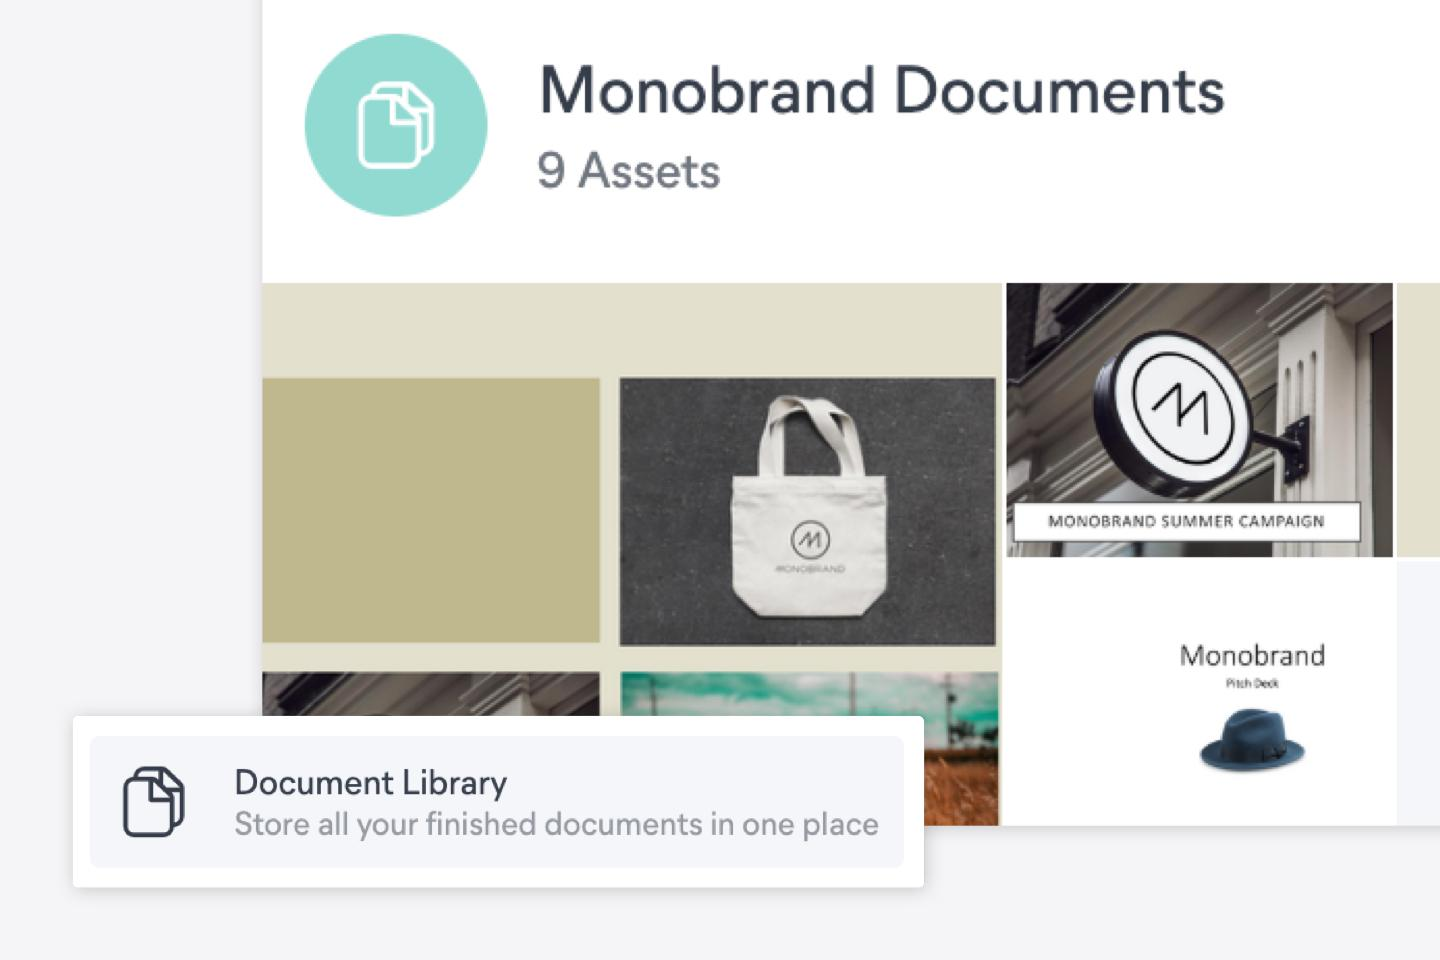 Introducing The Document Library